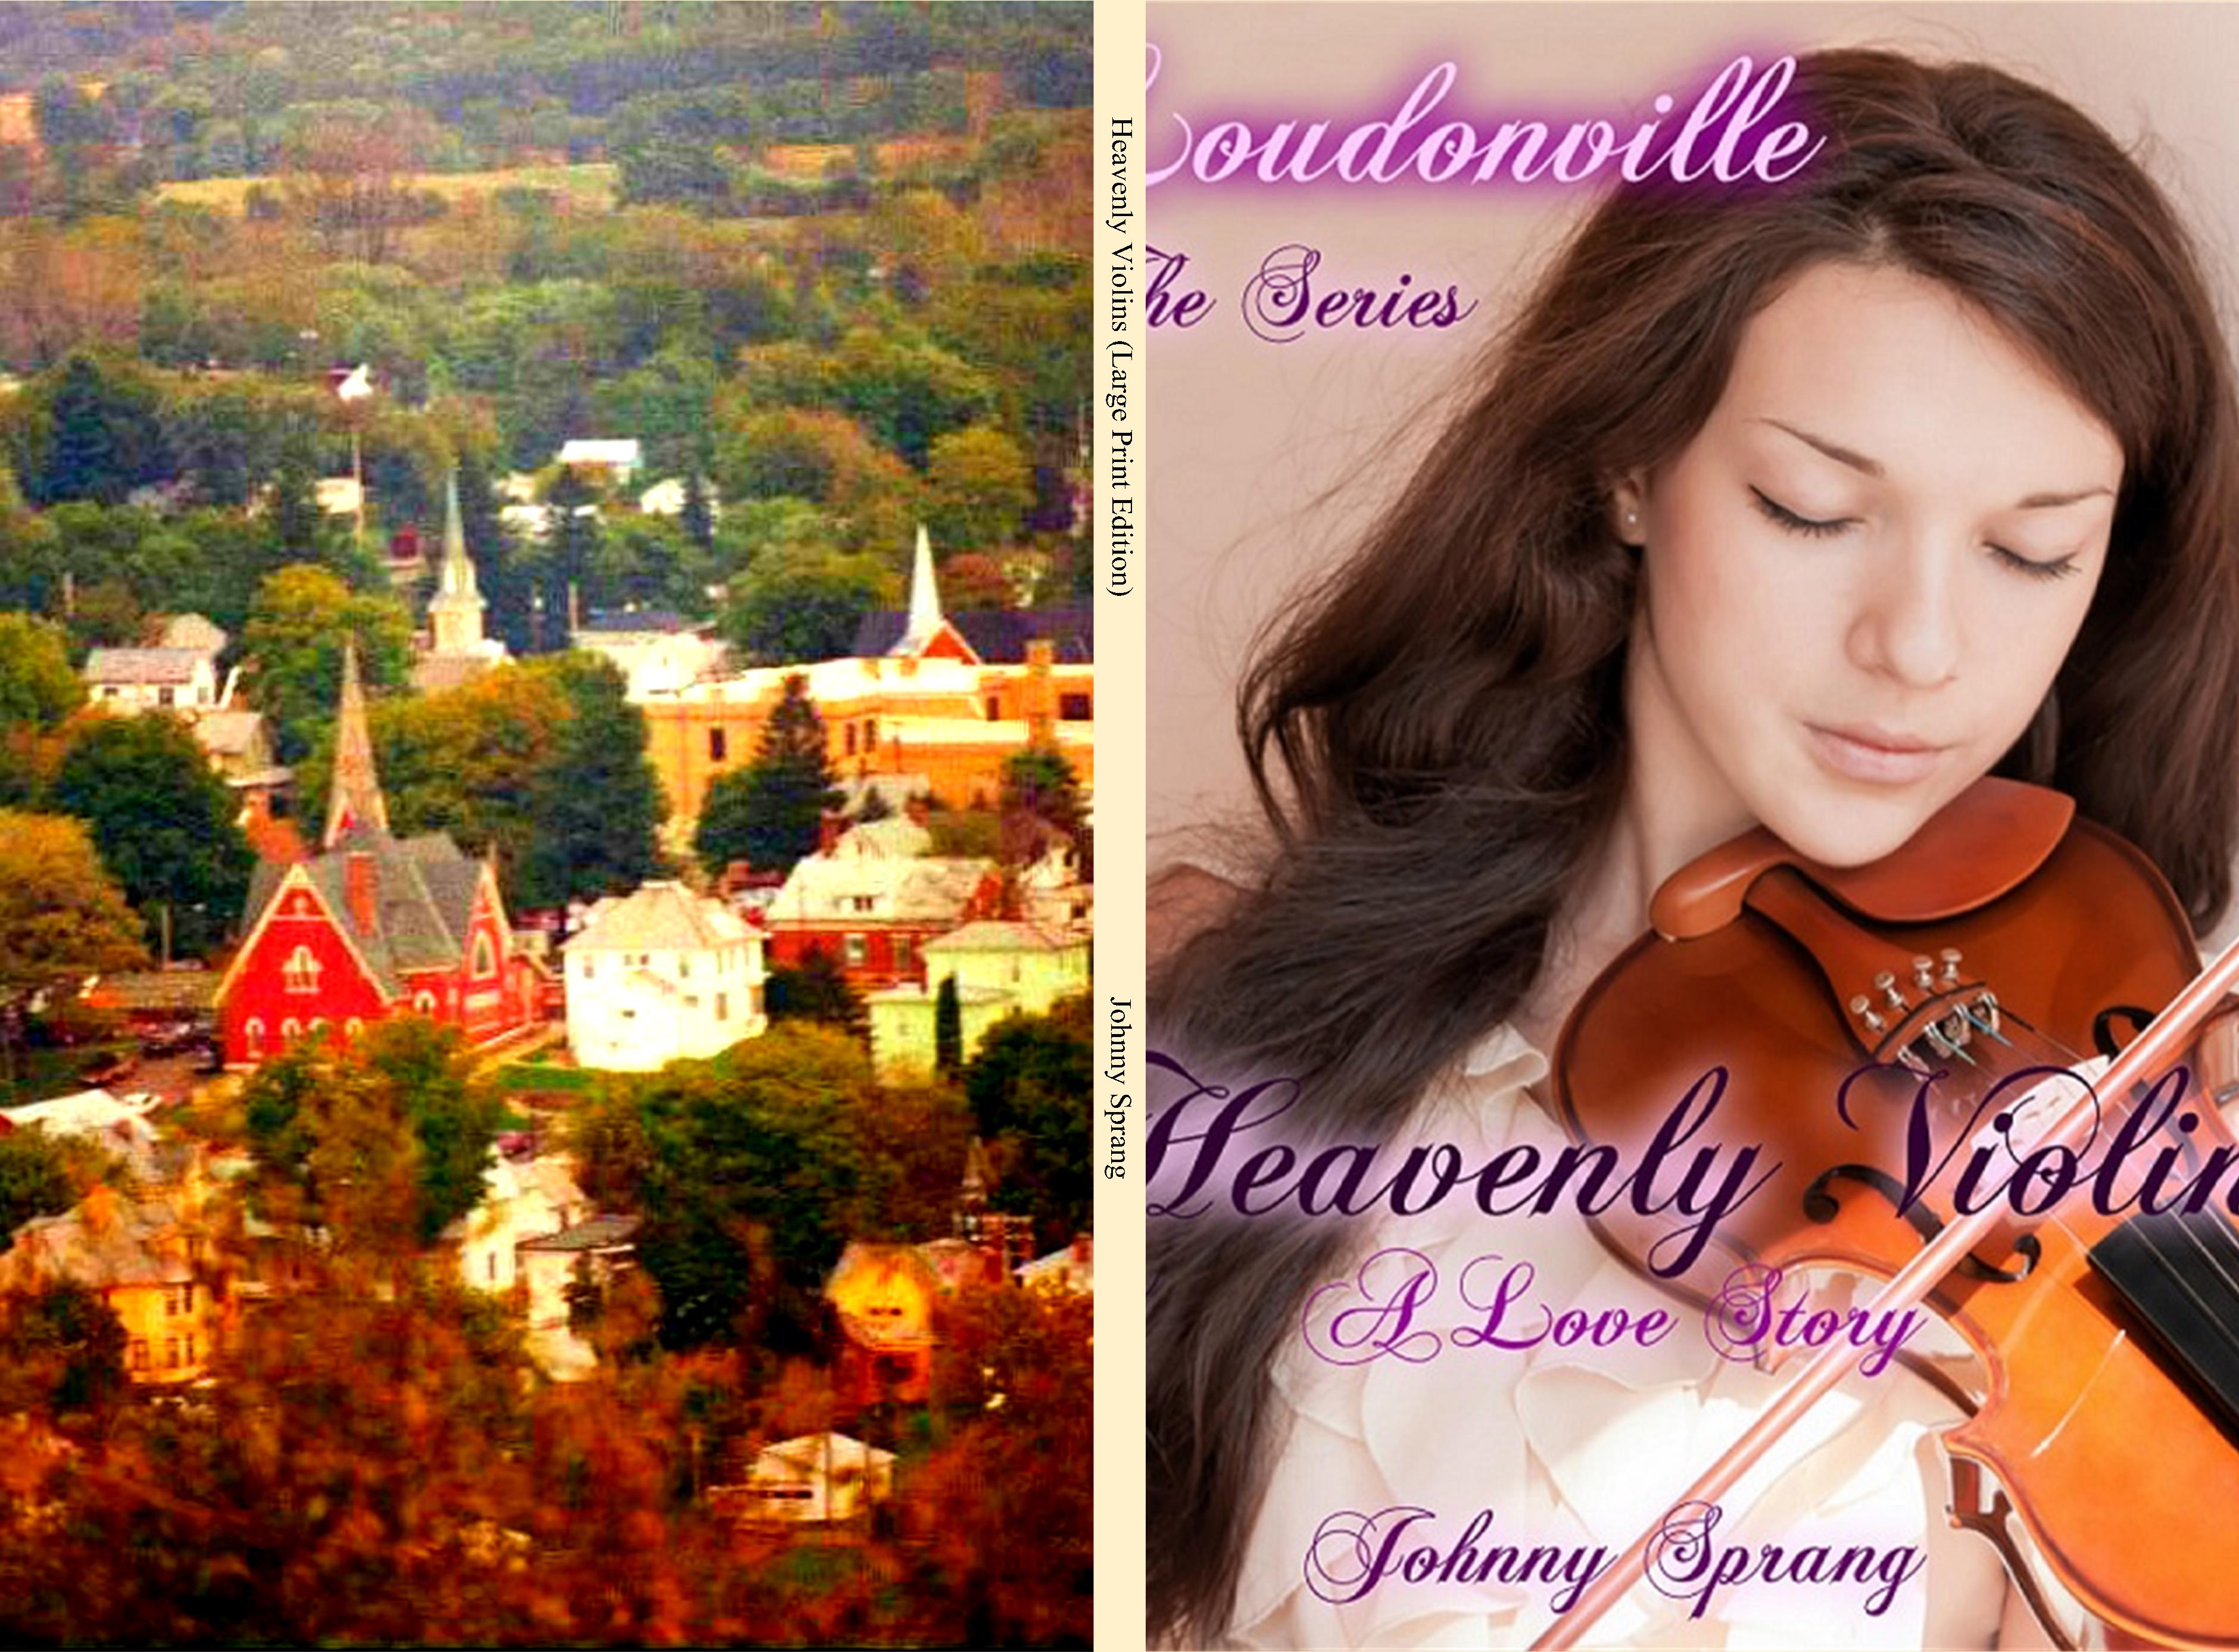 Heavenly Violins (Large Print Edition) cover image